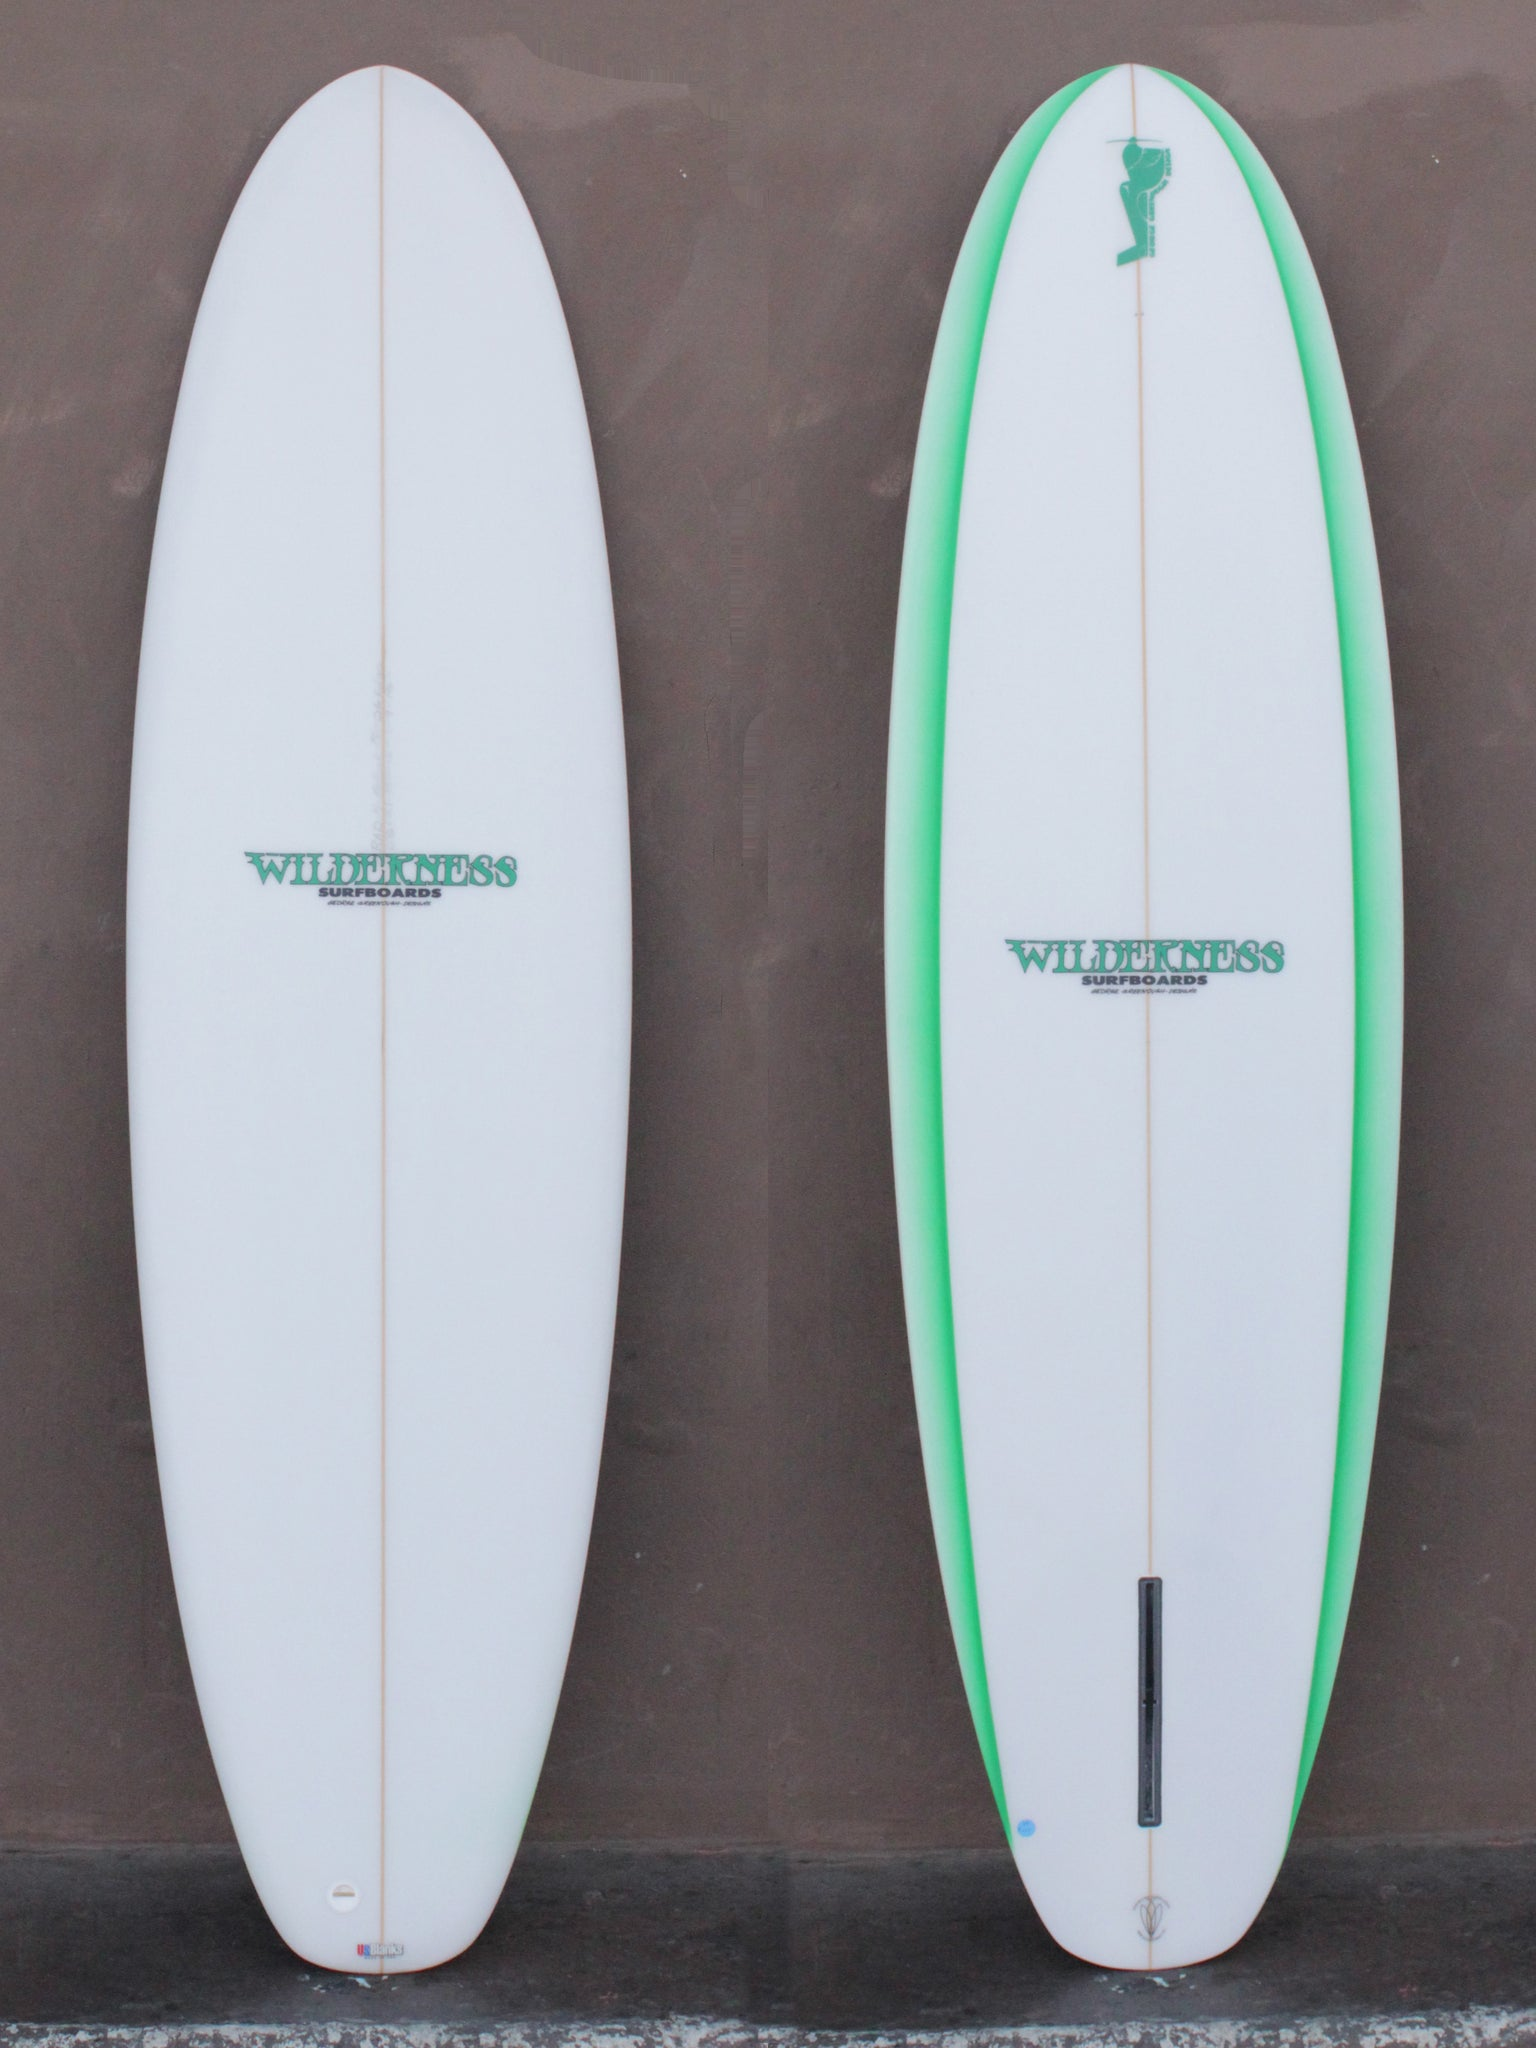 6'8 Wilderness OG Edge Stub